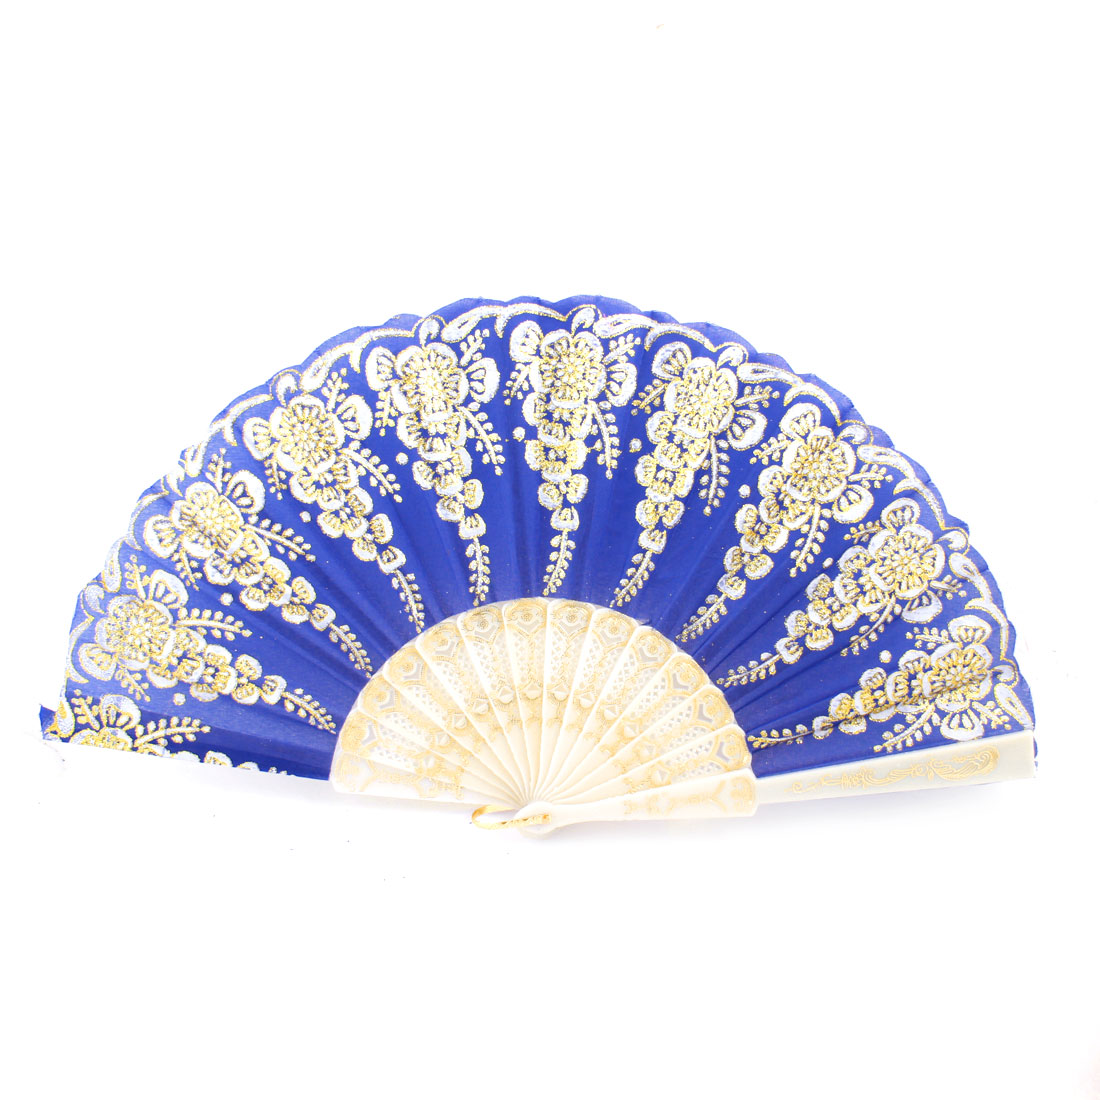 Plastic Hollow out Rib Gold Tone Glittery Powder Detail Flower Pattern Dancing Hand Fan Blue White